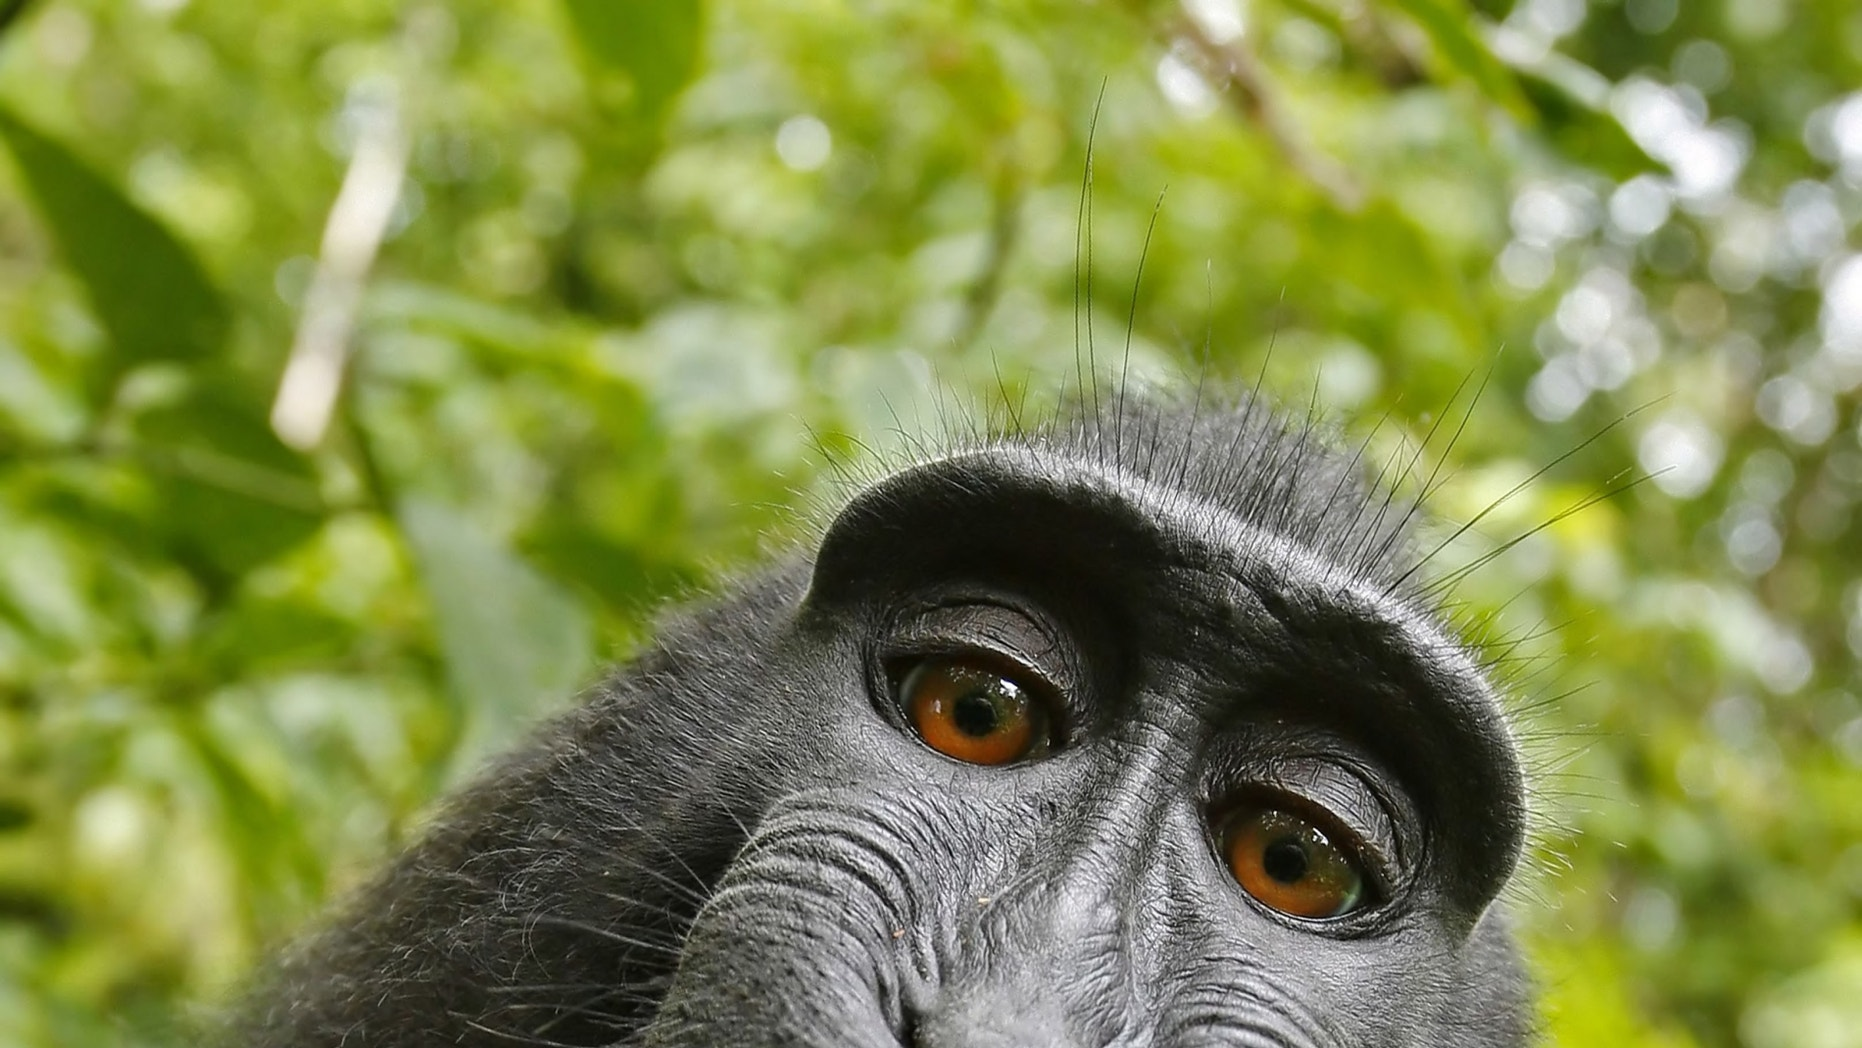 """This 2011 photo provided by People for the Ethical Treatment of Animals (PETA) shows a selfie taken by a macaque monkey on the Indonesian island of Sulawesi with a camera that was positioned by British nature photographer David Slater. The photo is part of a court exhibit in a lawsuit filed by PETA in San Francisco on Tuesday, Sept. 22, 2015, which says that the monkey, and not Slater, should be declared the copyright owner of the photos. Slater has argued that, as the """"intellect behind the photos,"""" he is the copyright owner since he set up the camera so that such a photo could be produced if a monkey approached it a pressed the button."""